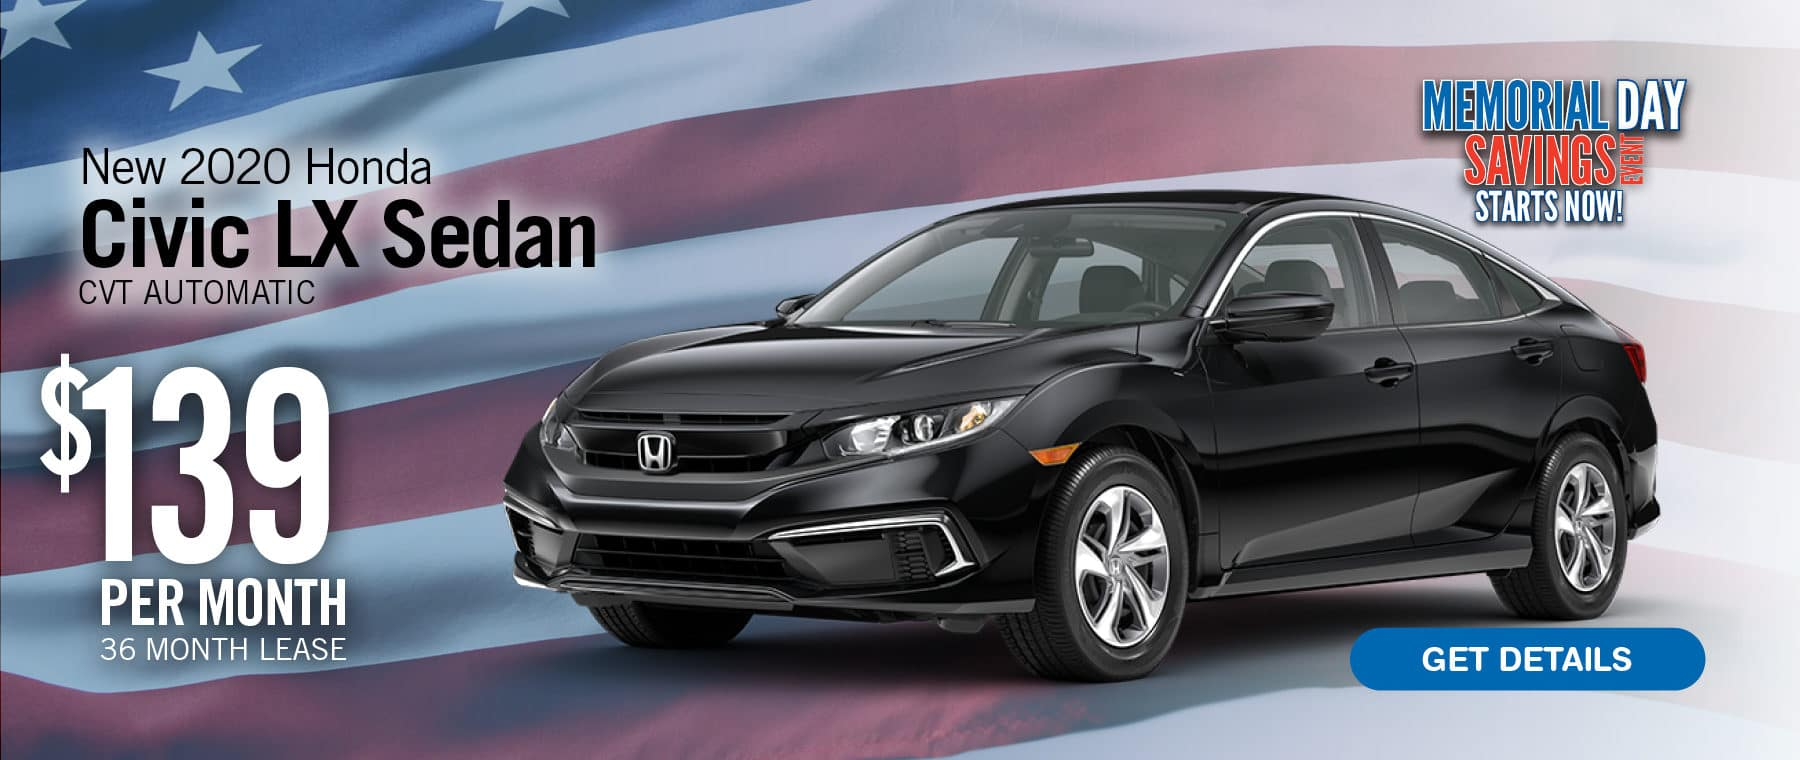 Lease a Civic for $139